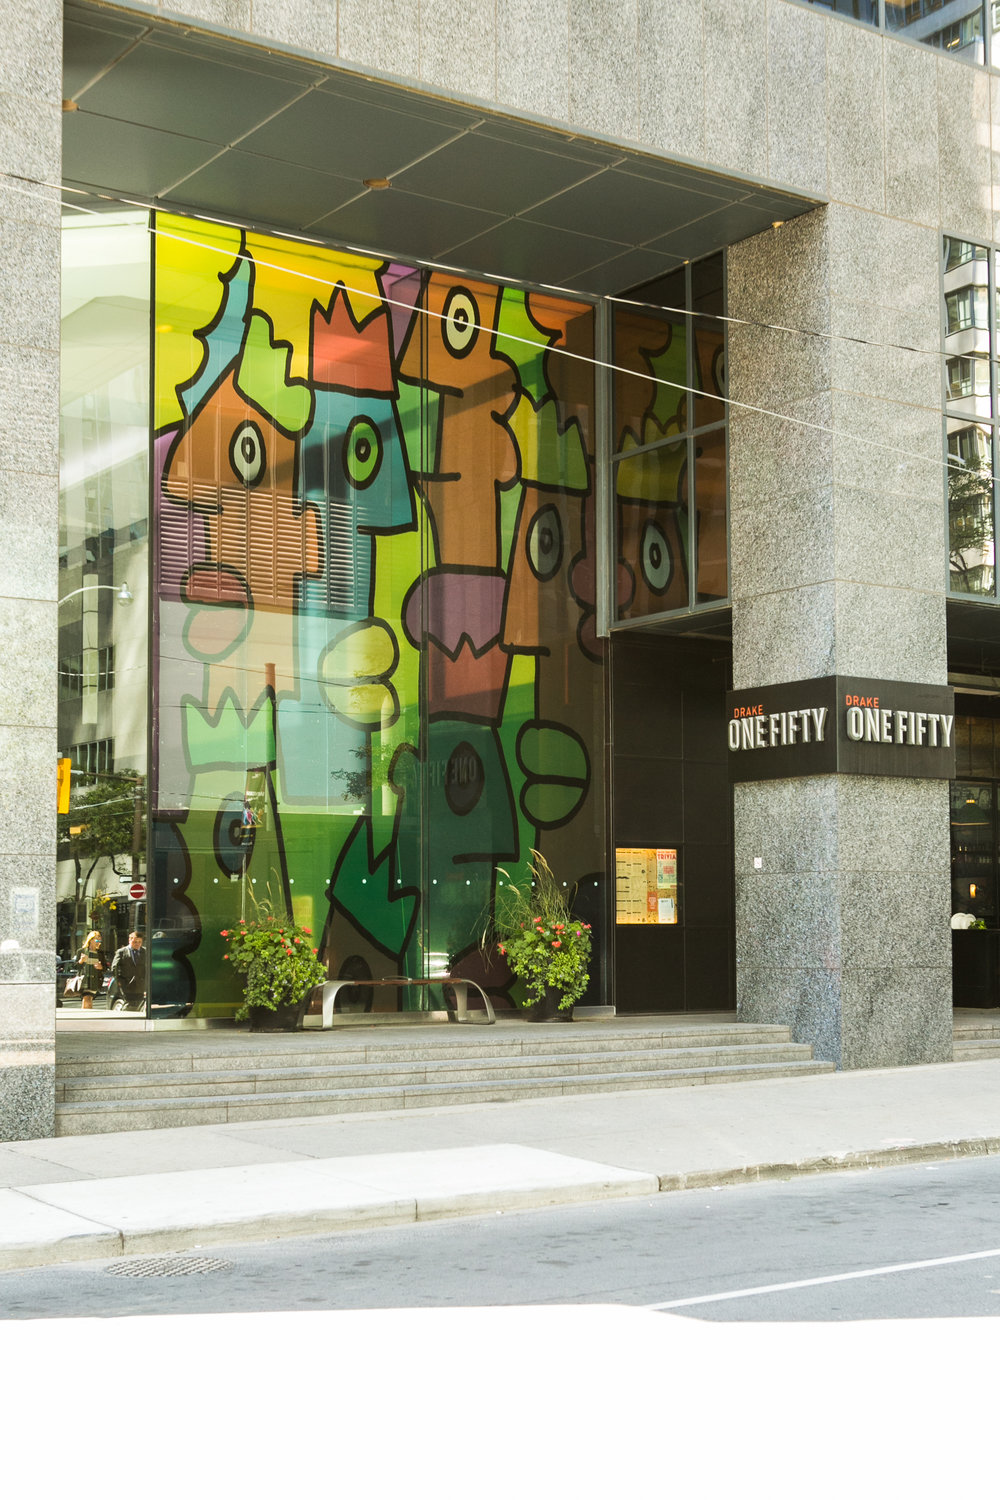 Thierry Noir Anamorphose, Sept. 1, 2014 – Aug. 31, 2015